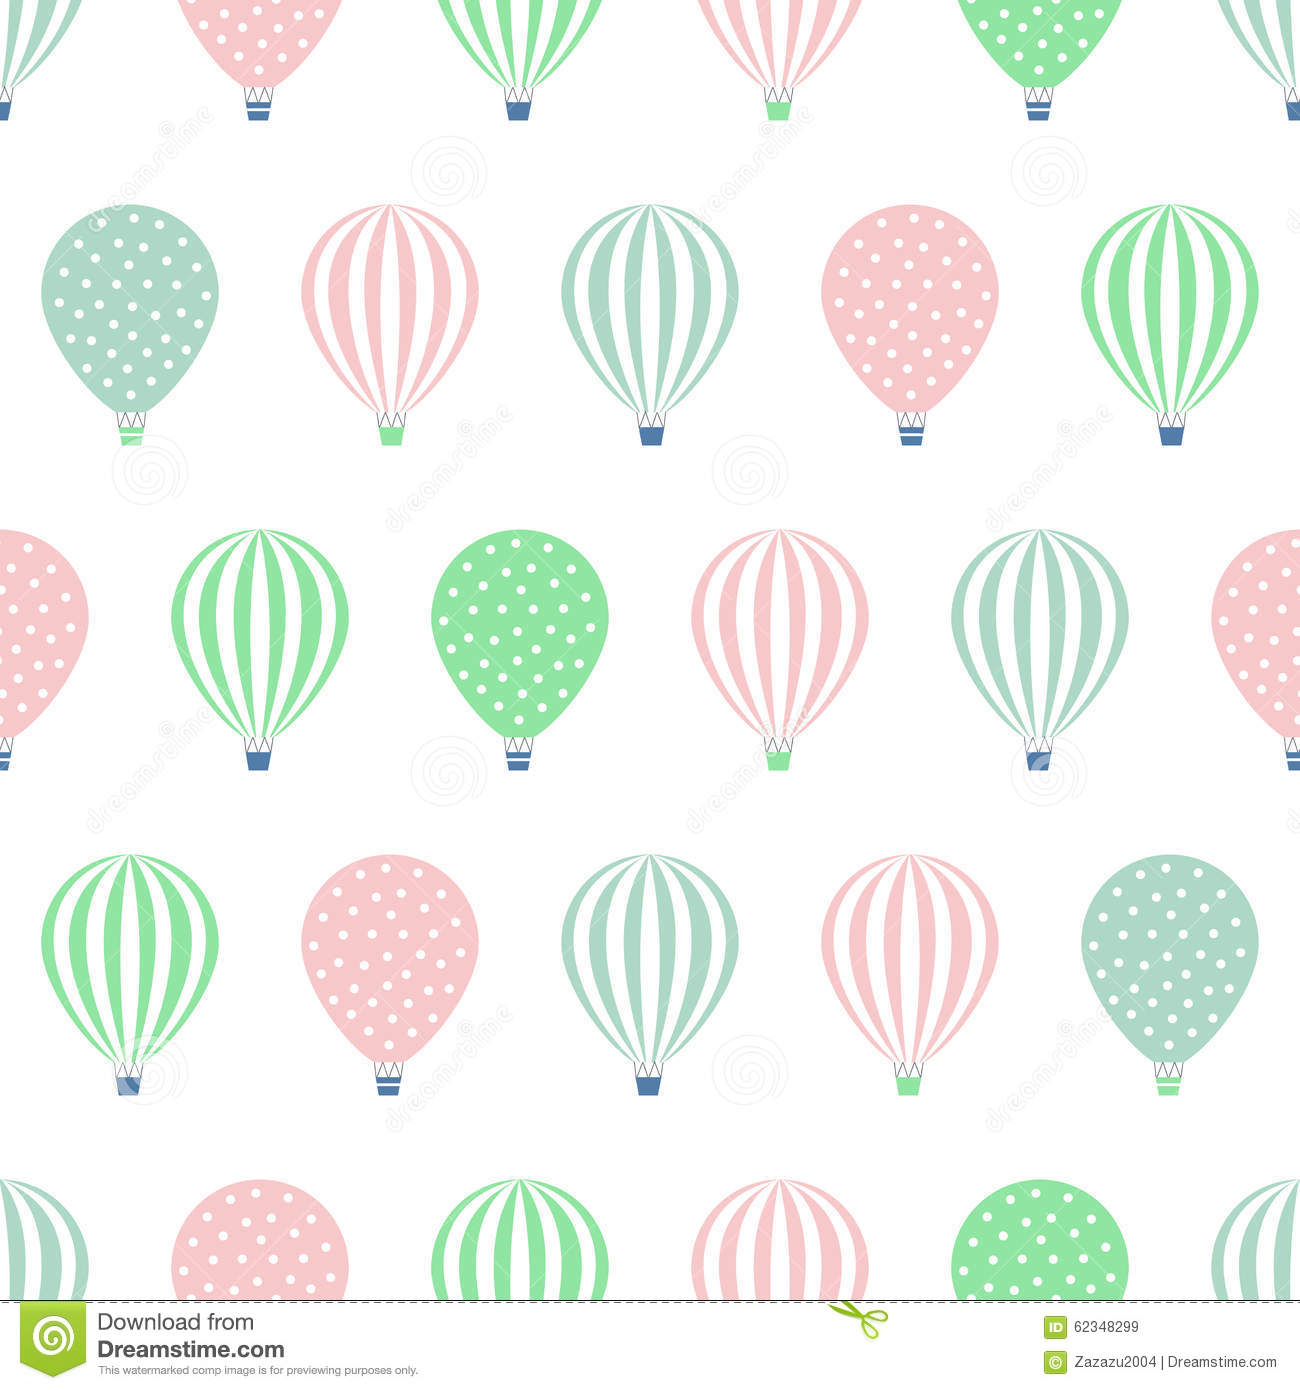 Hot Air Balloon Seamless Pattern Baby Shower Vector Illustrations